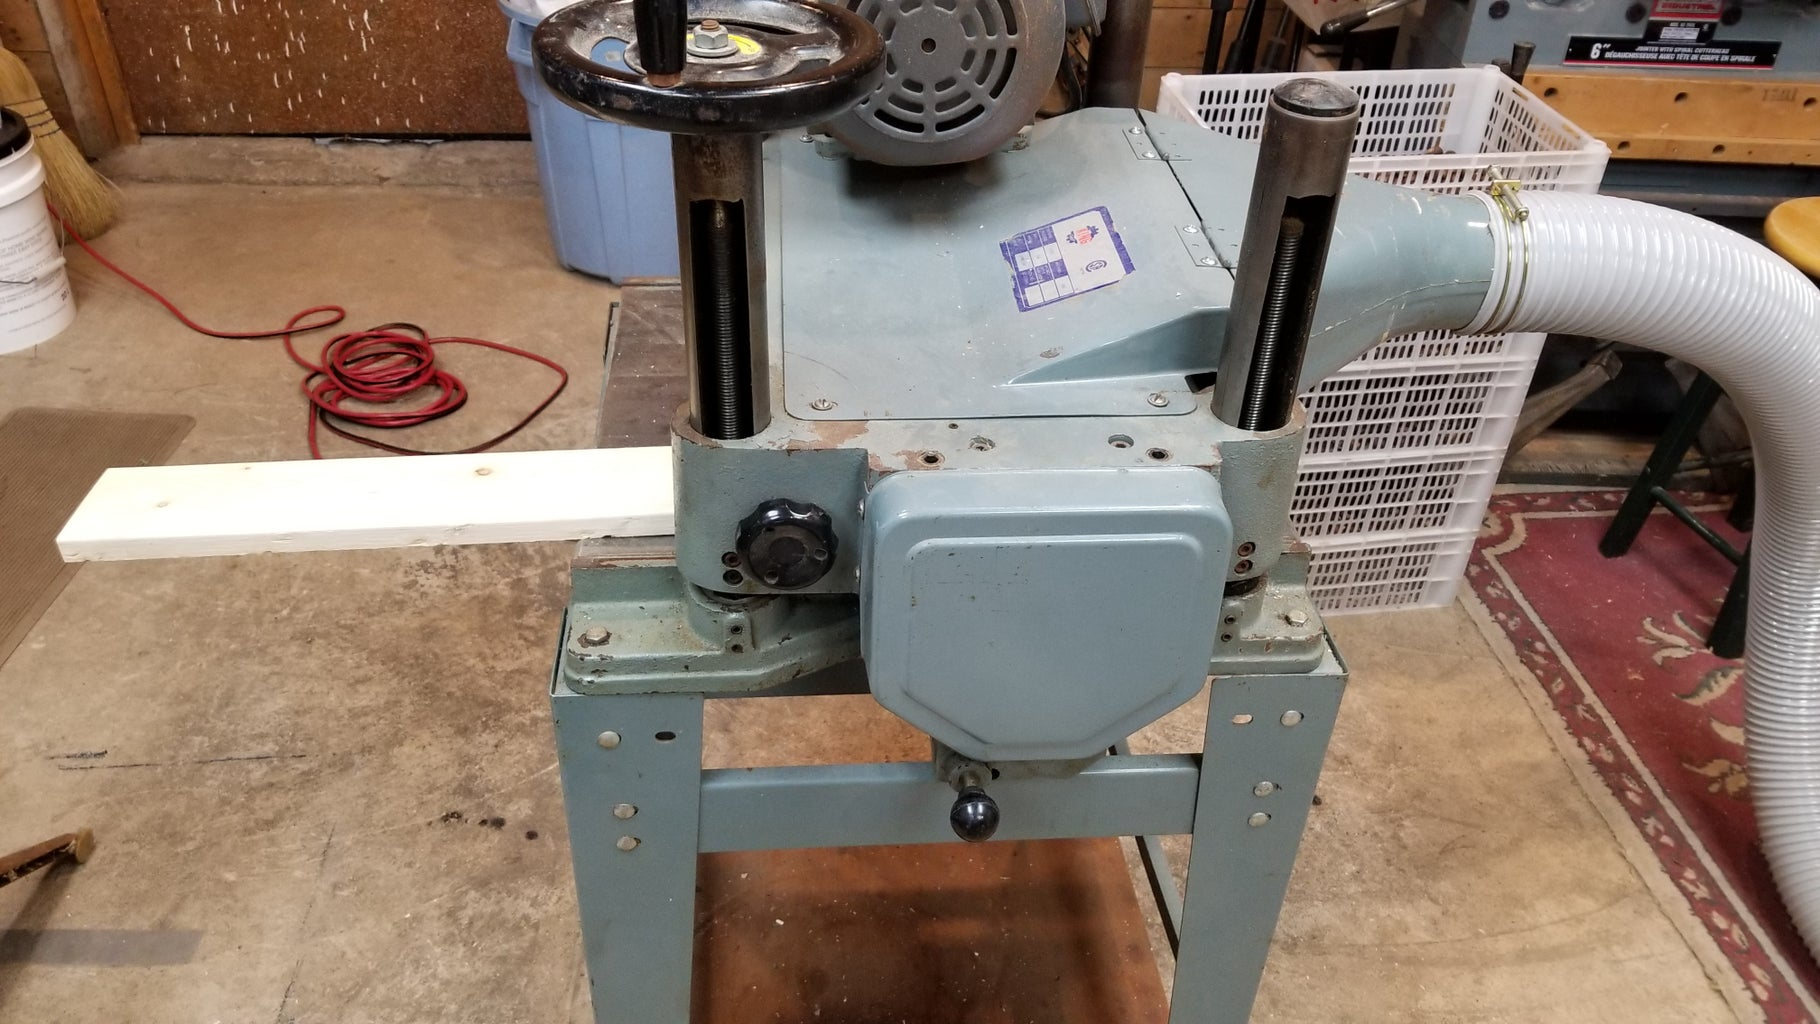 The Thickness Planer